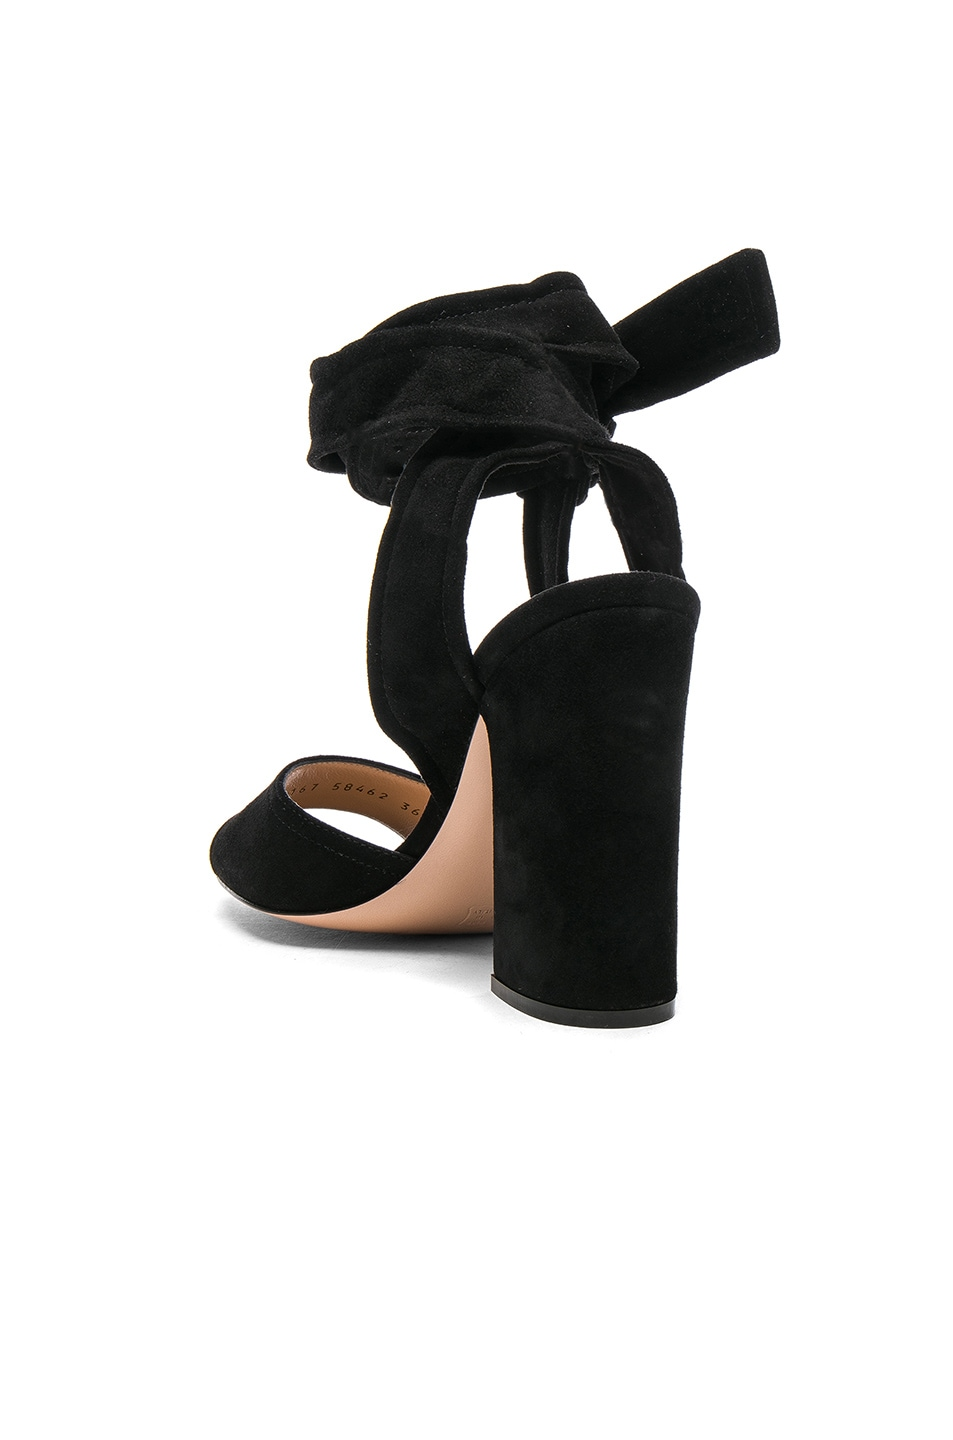 Image 3 of Gianvito Rossi Suede Ankle Tie Heels in Black